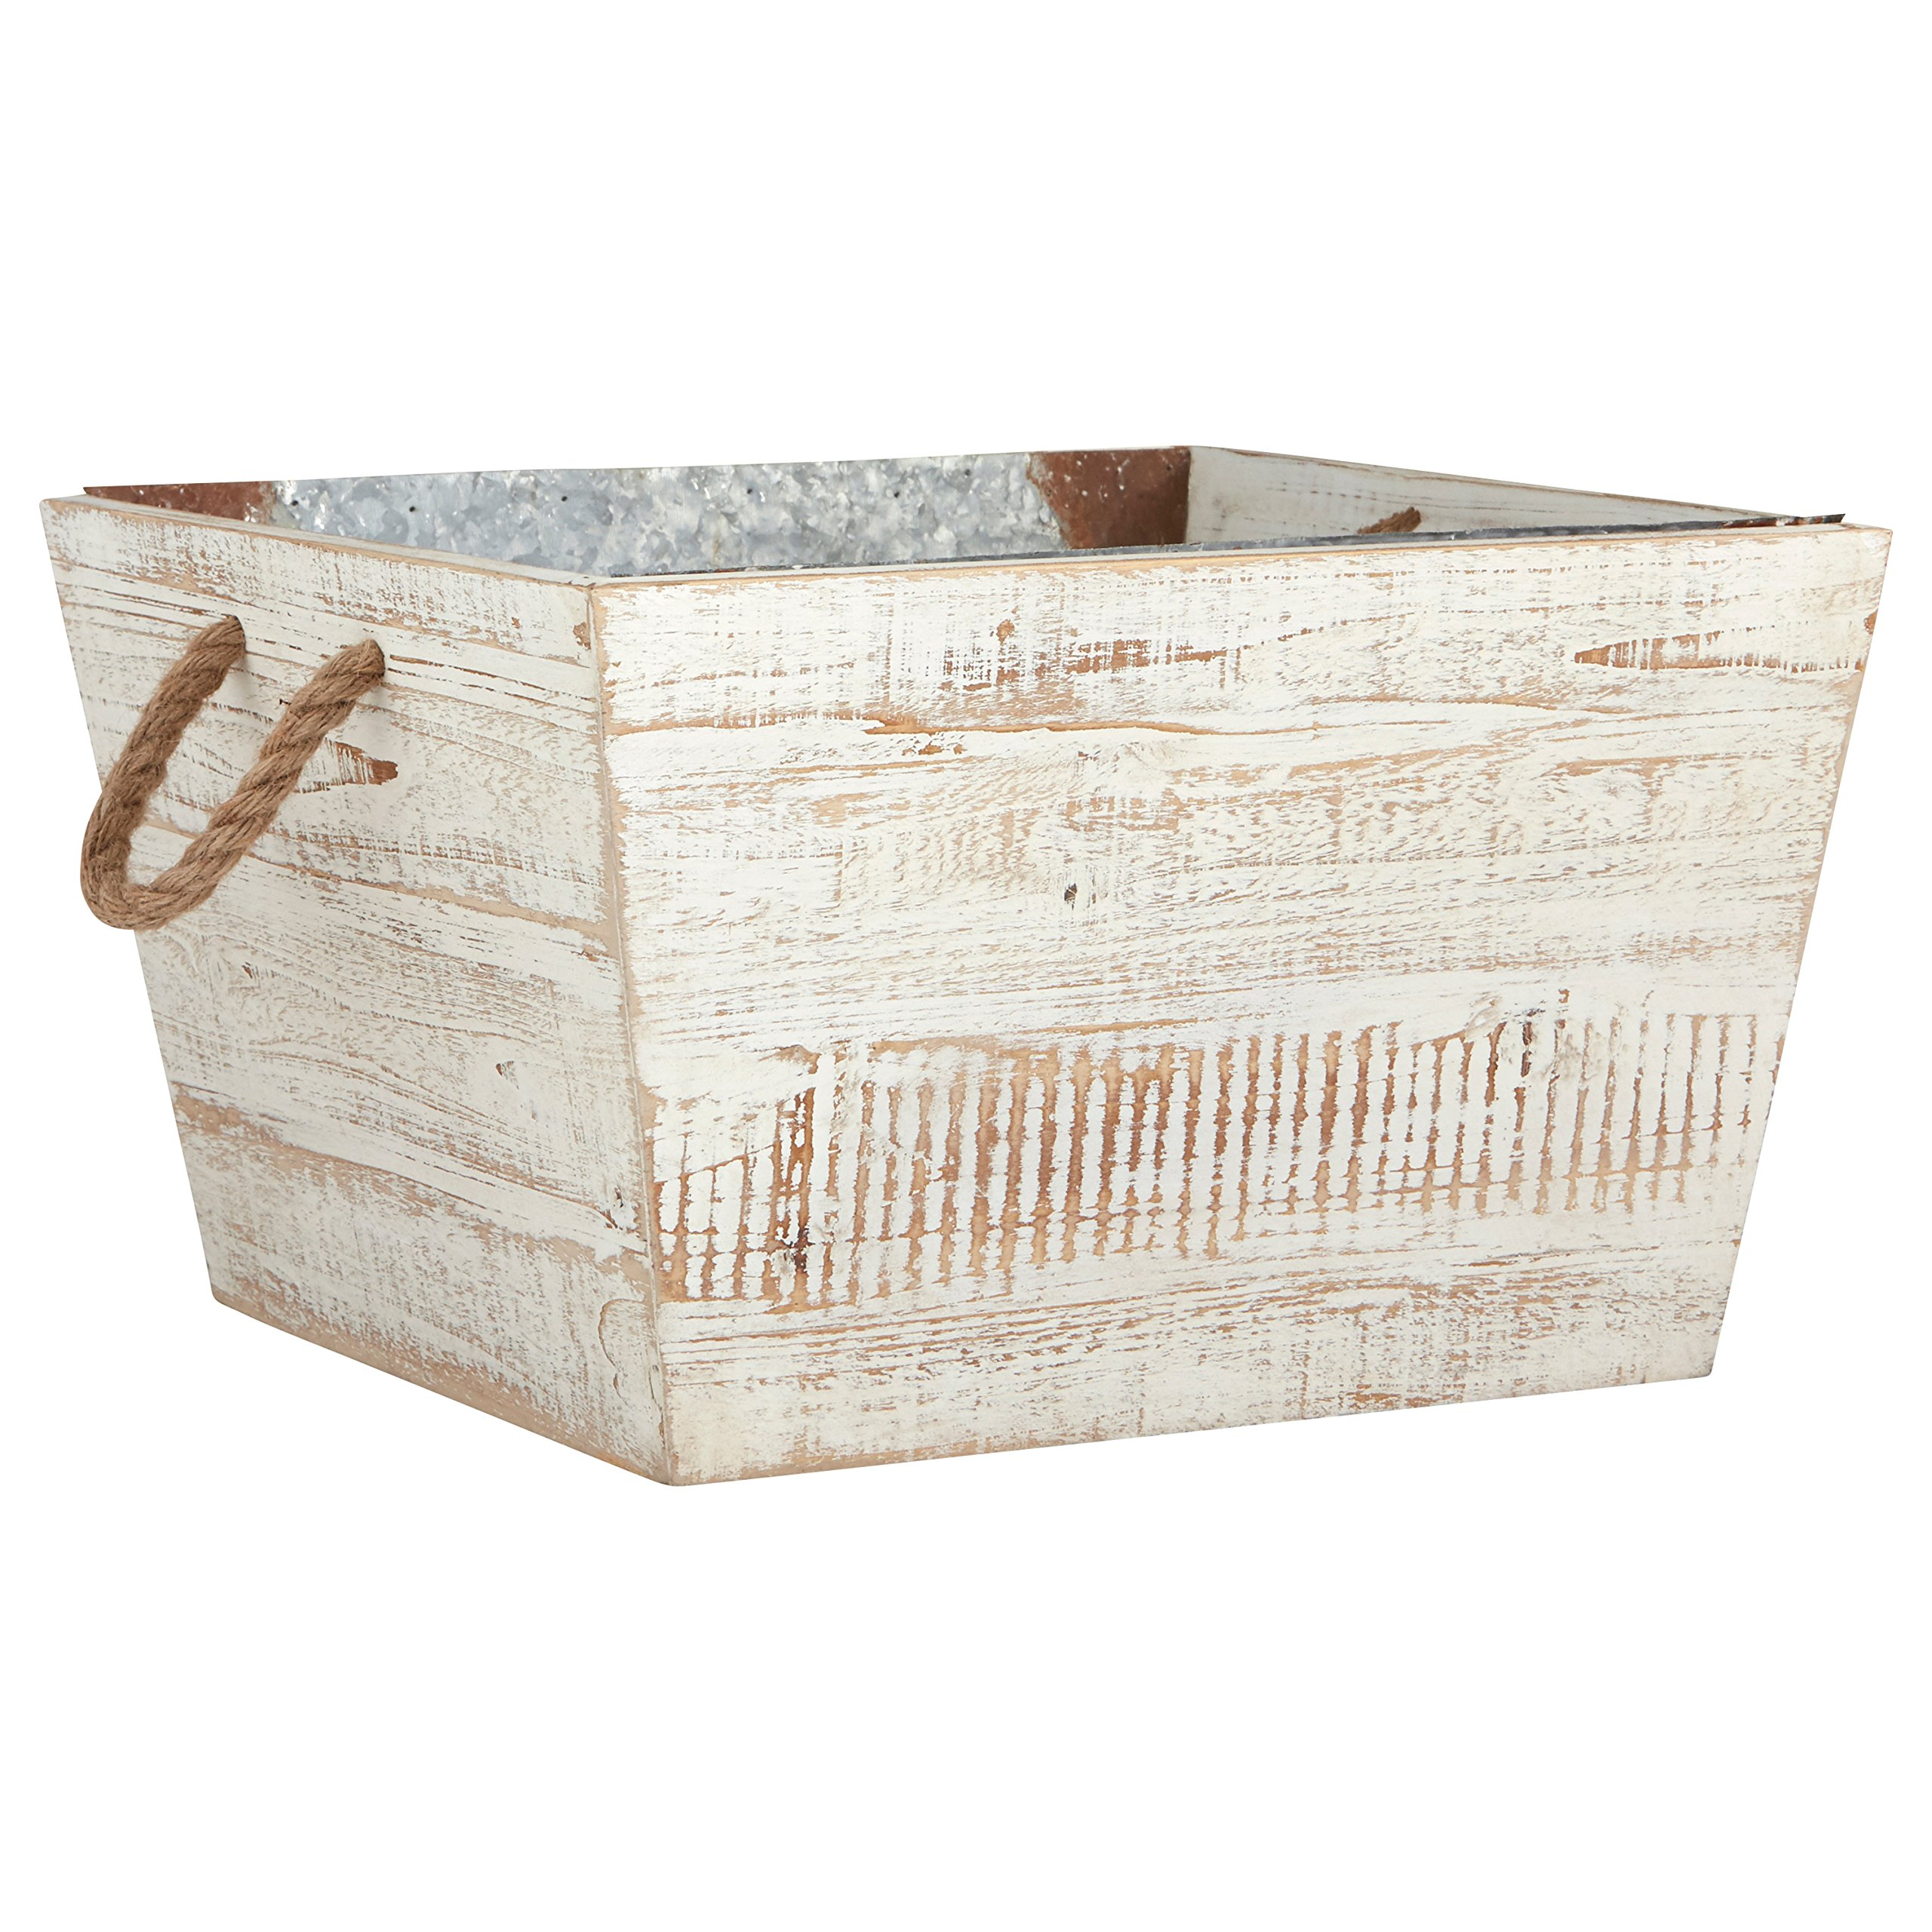 Stone & Beam Modern Farmhouse Wood and Galvanized Metal Decor Storage Bin Basket - 15.75 Inch, White Washed by Stone & Beam